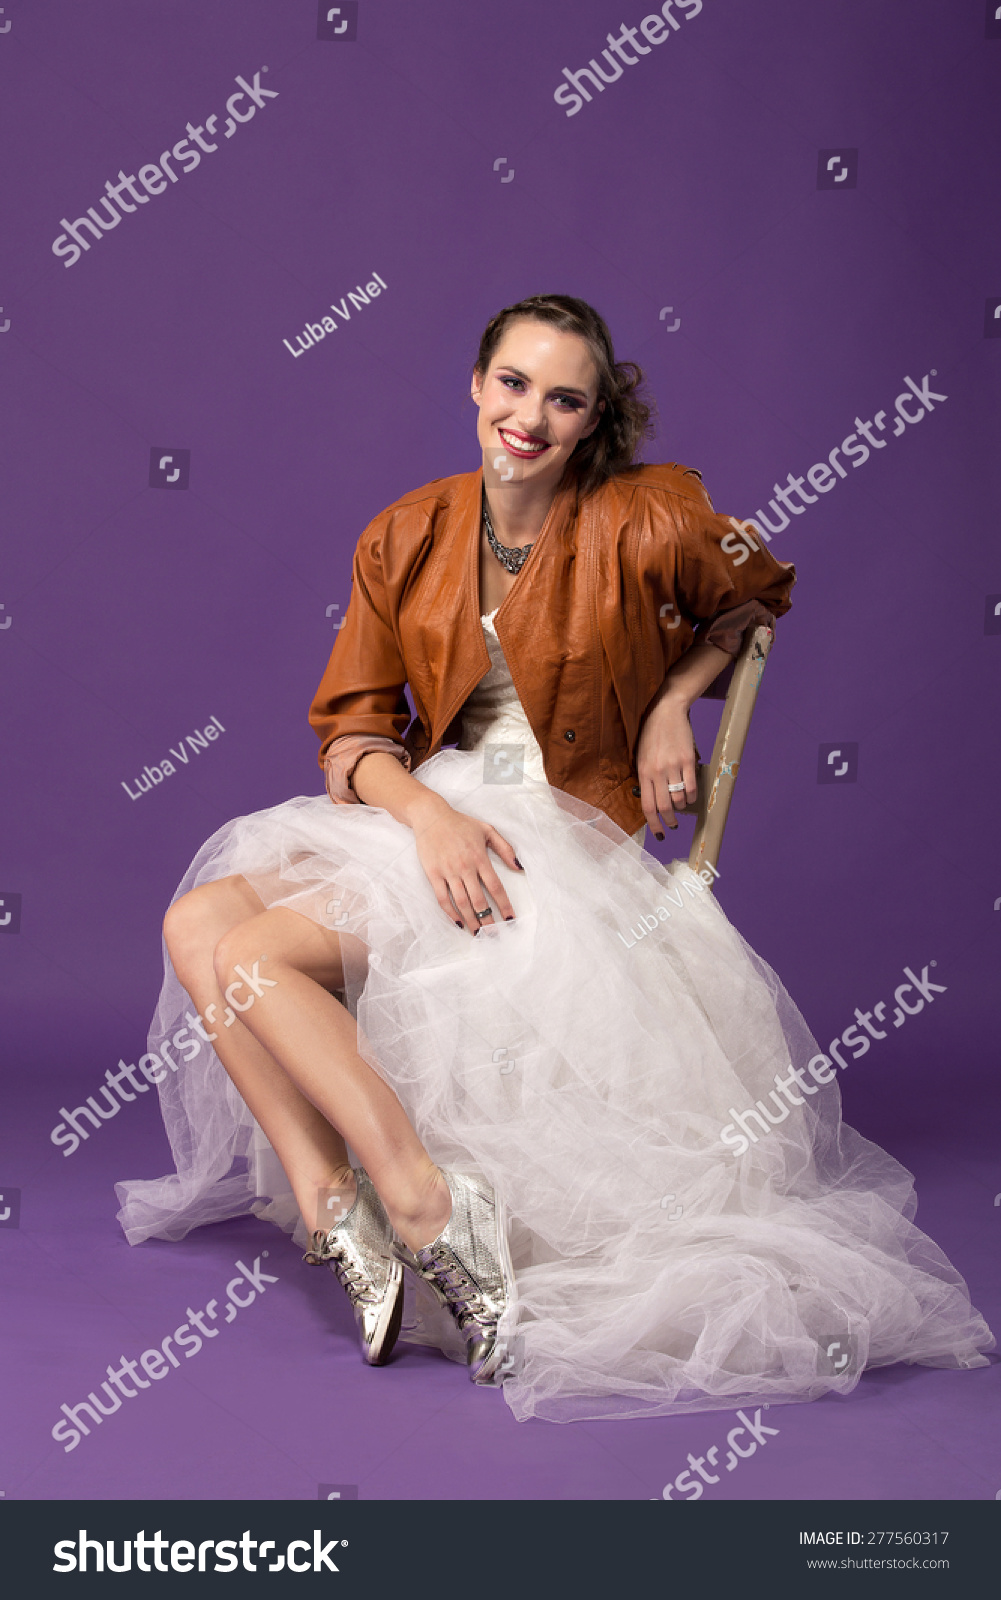 bd815e9f3c739 portrait of modern bride with tulle wedding dress wearing sequin shoes and  leather jacket sitting against